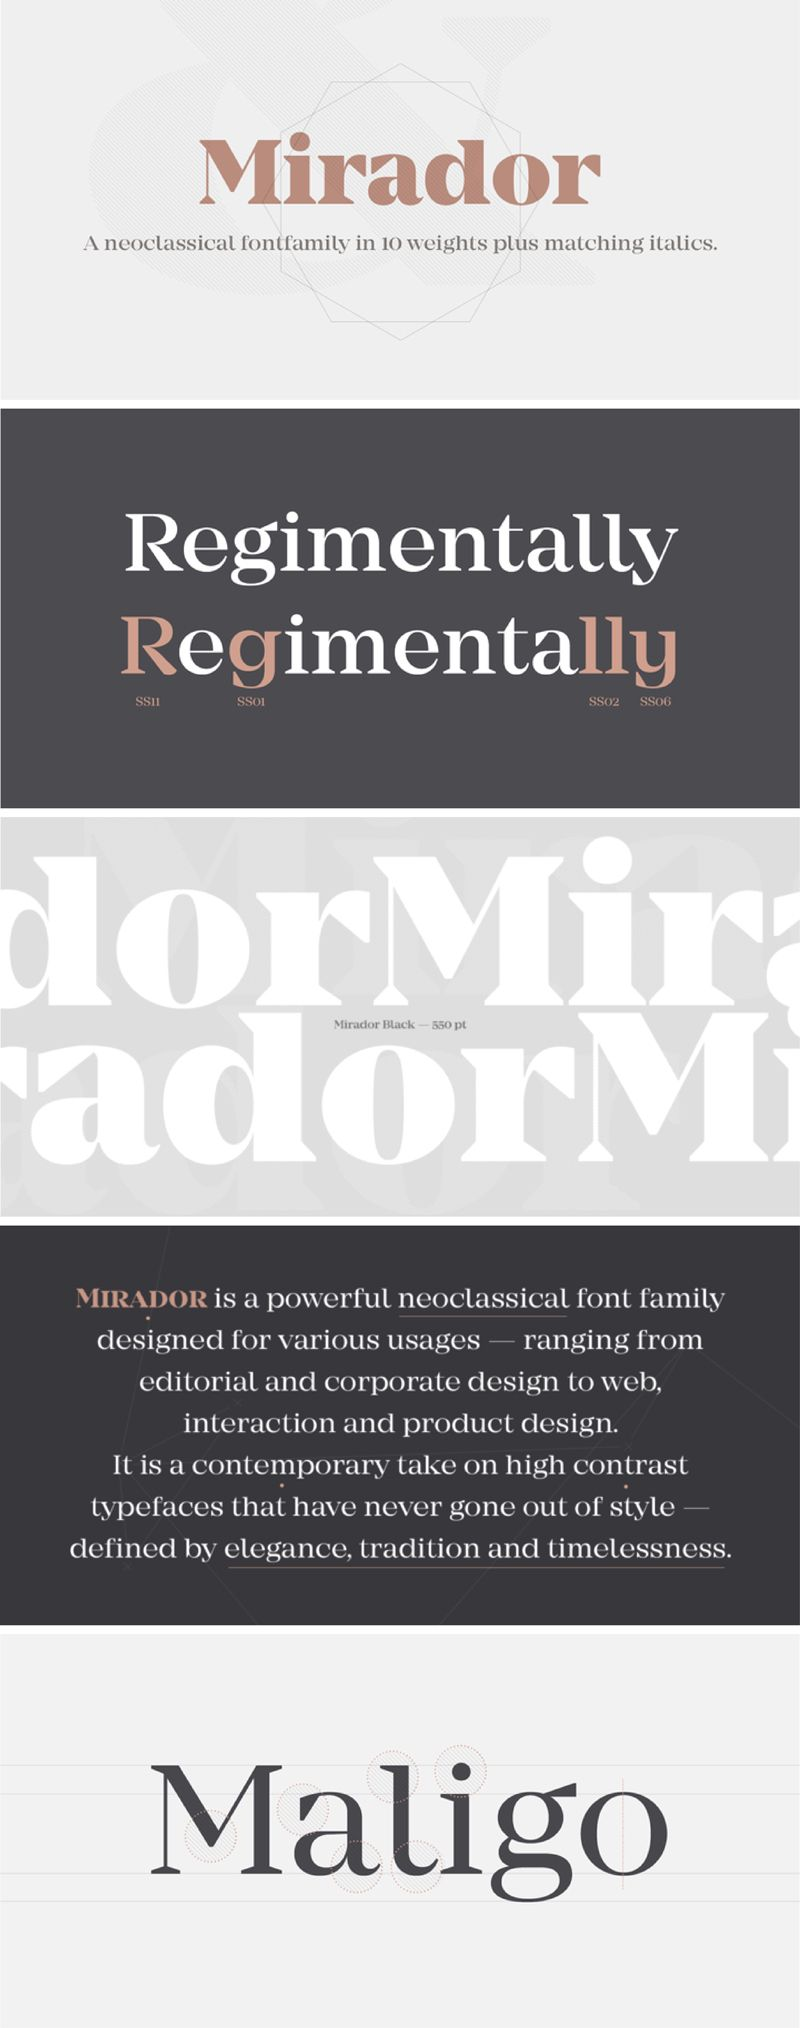 Mirador is a powerful neoclassical font family designed for